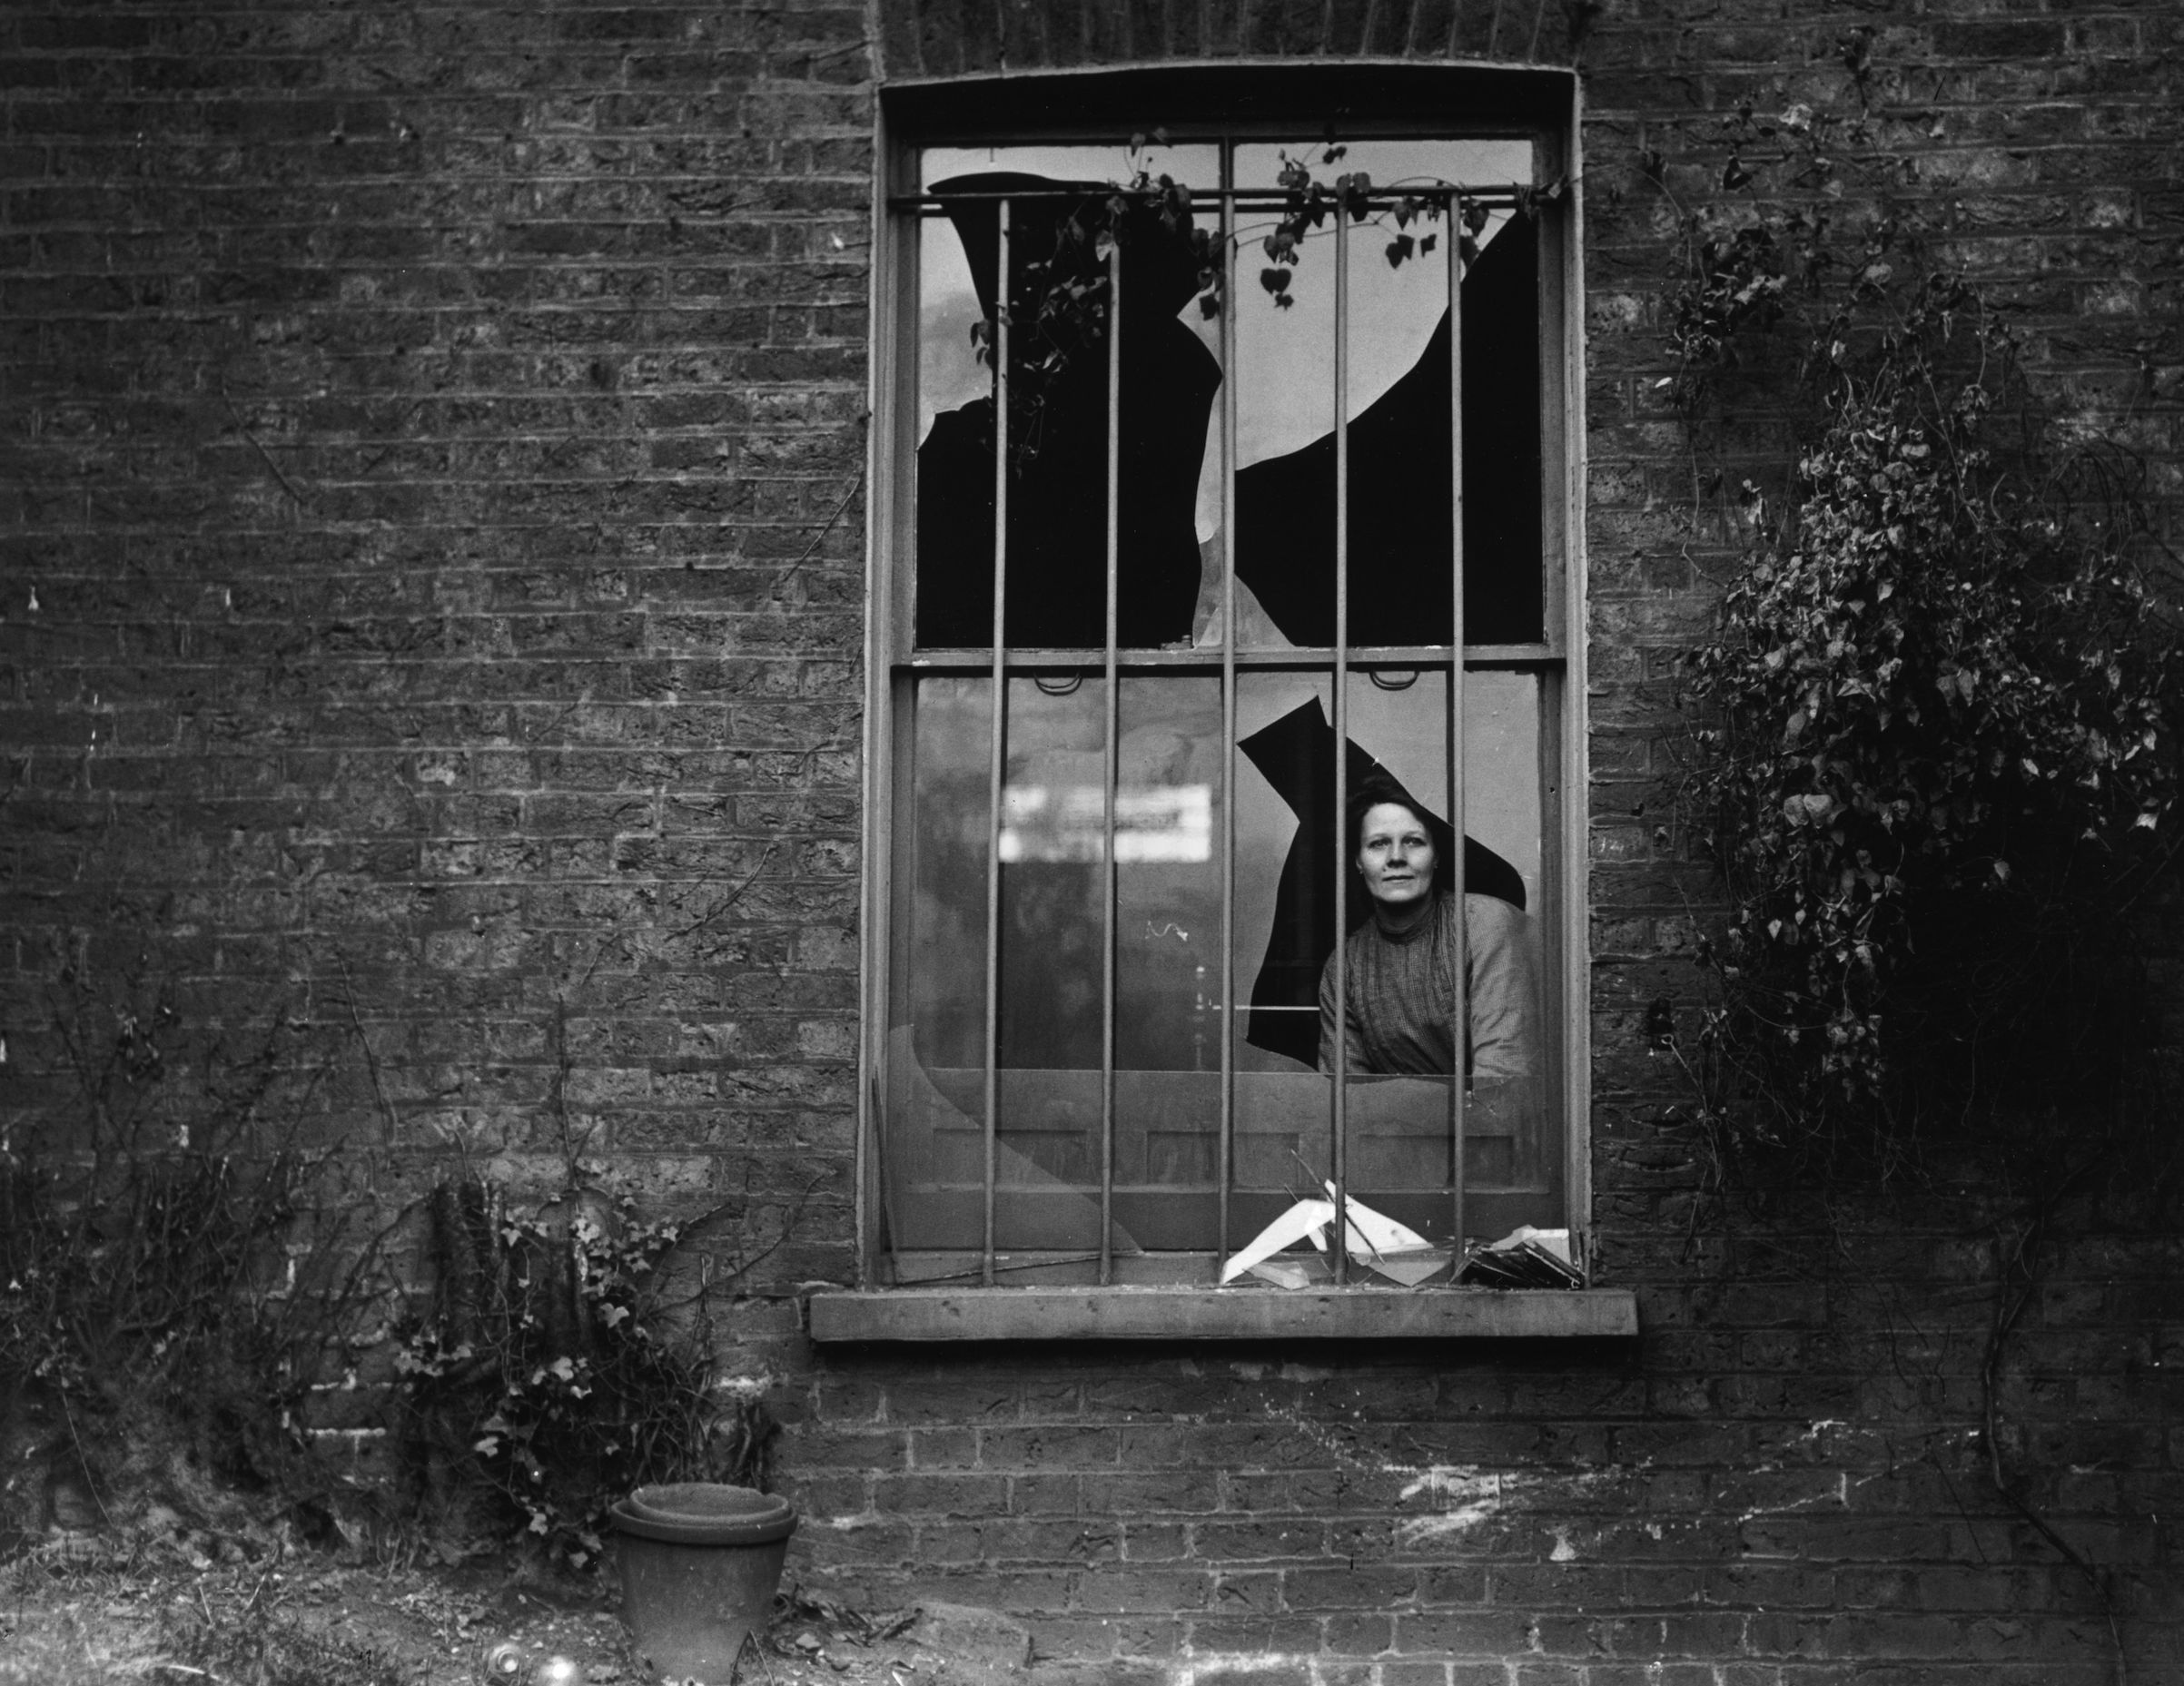 A woman peers through a shattered window the day after a bomb attack by suffragettes on nearby Holloway prison, Dec. 19, 1913. No-one was arrested for the attack, but suspicion fell on the Women's Social and Political Union (WSPU).